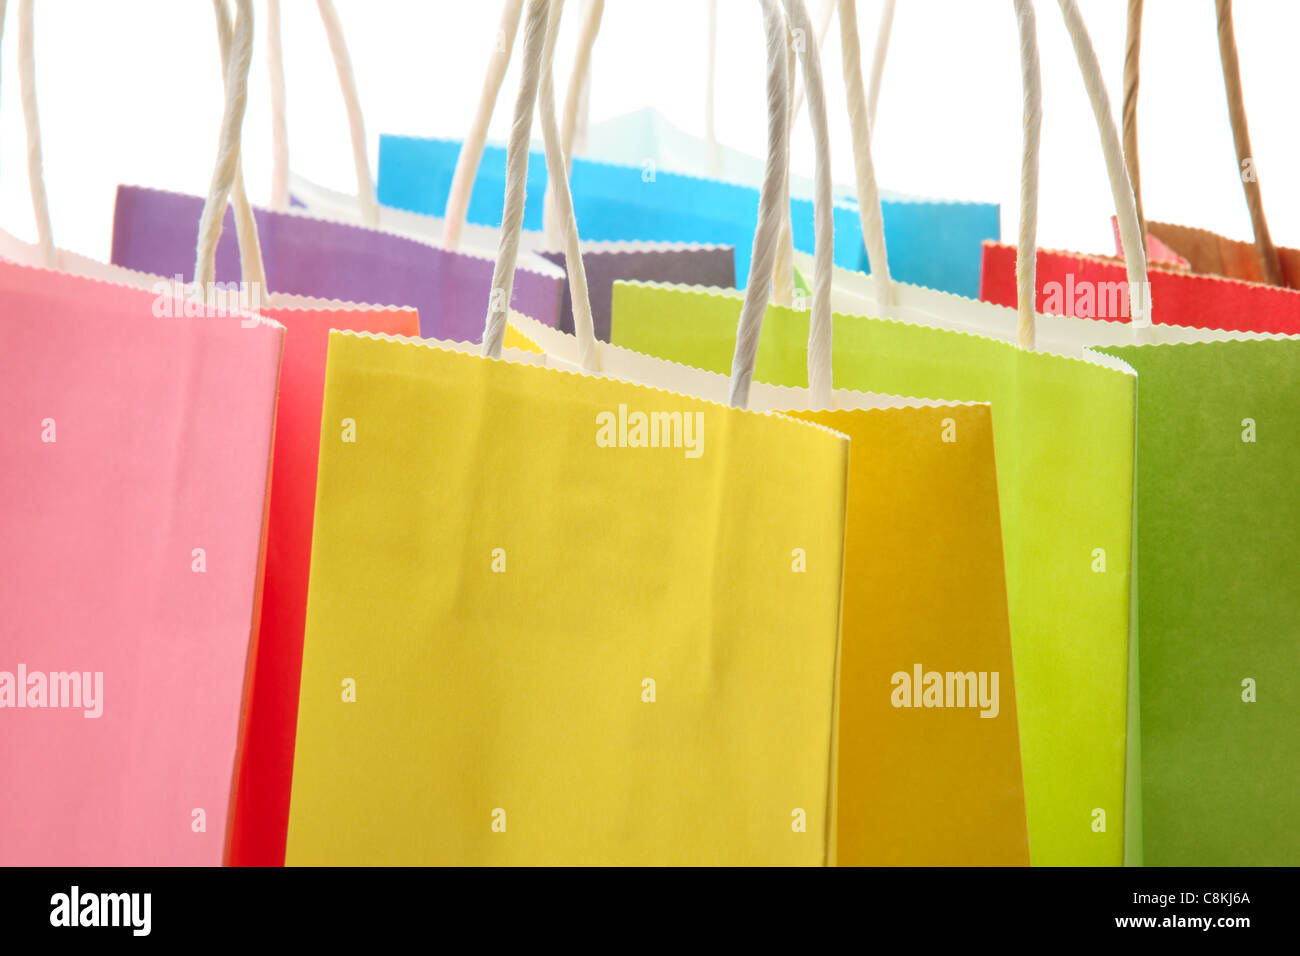 Closeup of colorful shopping bags Photo Stock